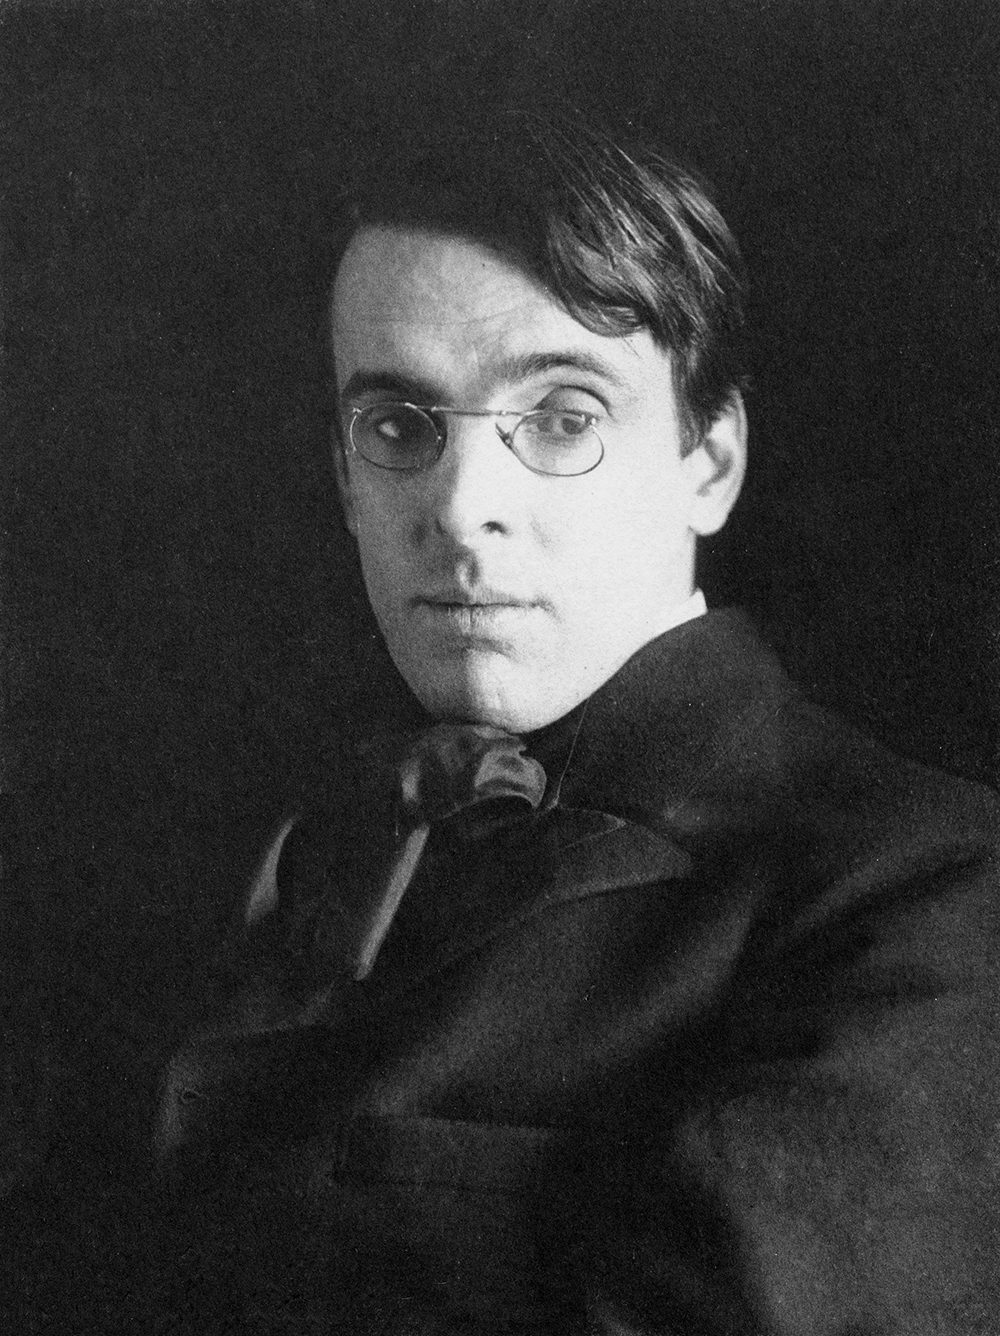 William Butler Yeats image